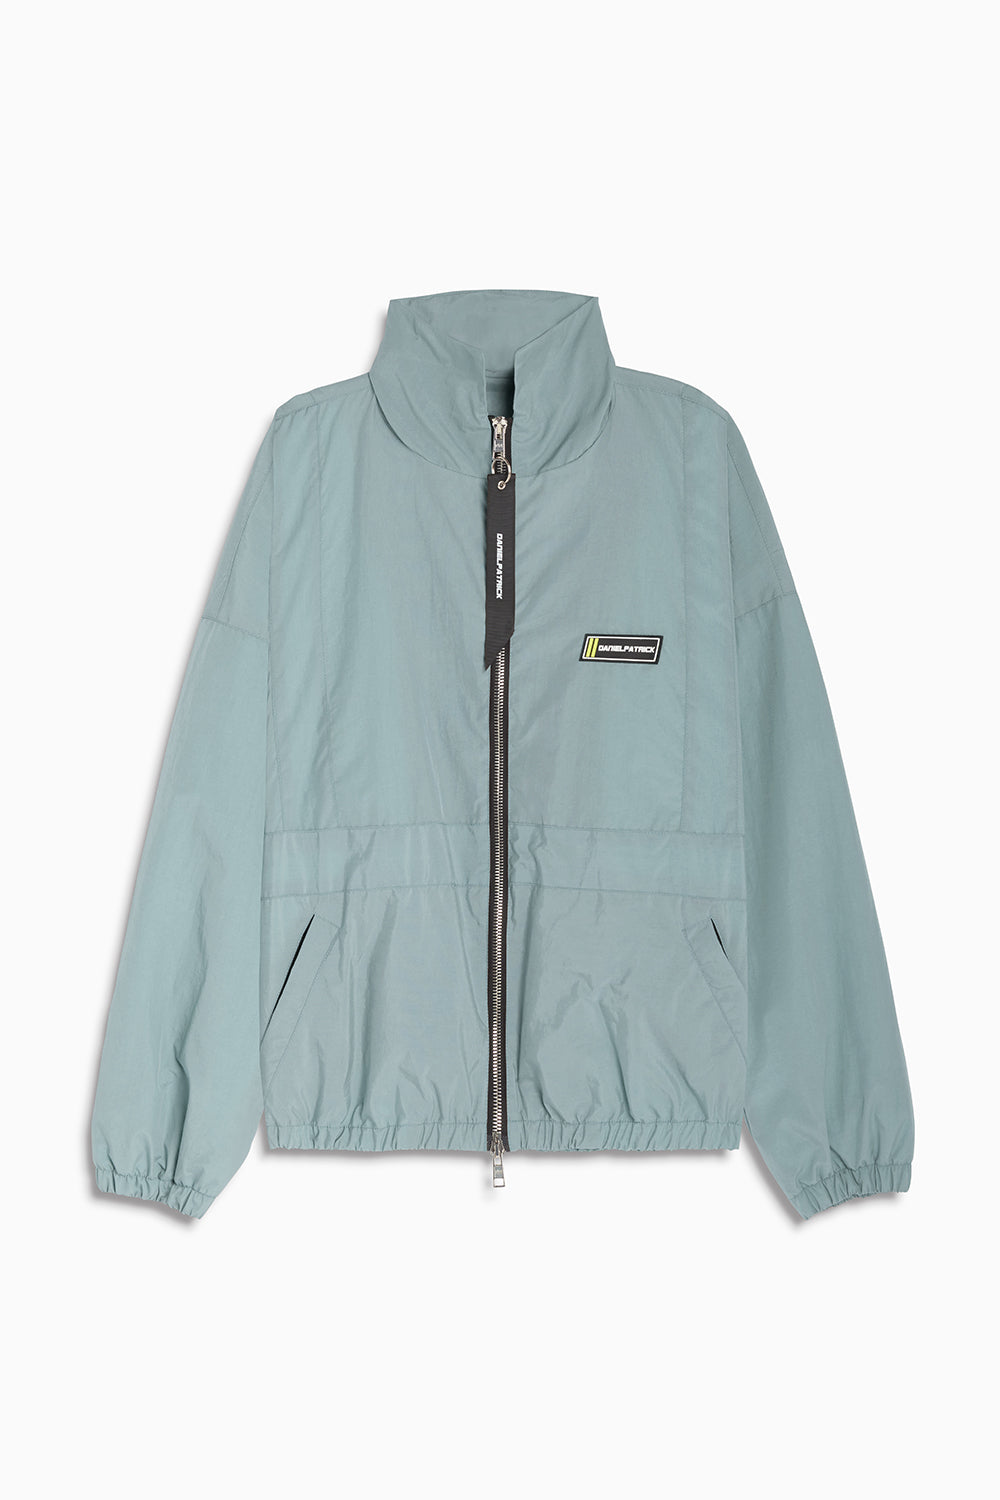 2020 track jacket / sea foam